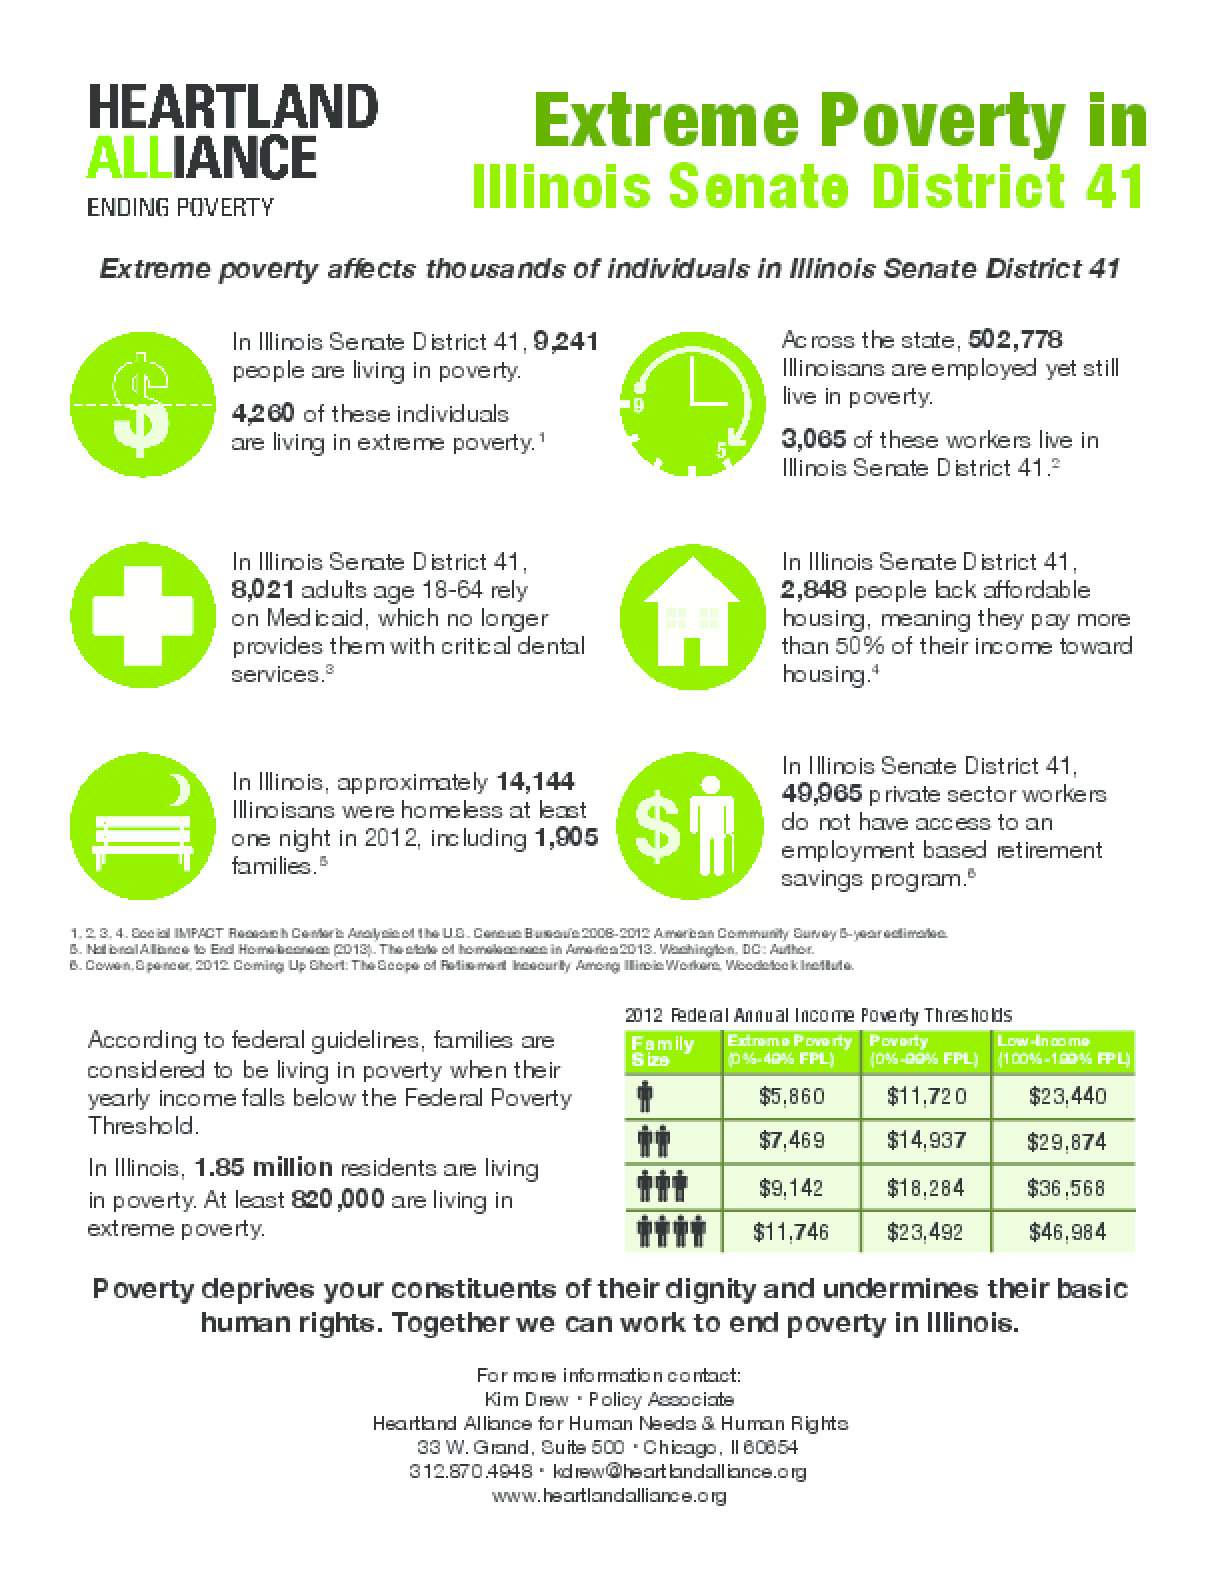 Poverty Fact Sheet for Illinois Senate District 41